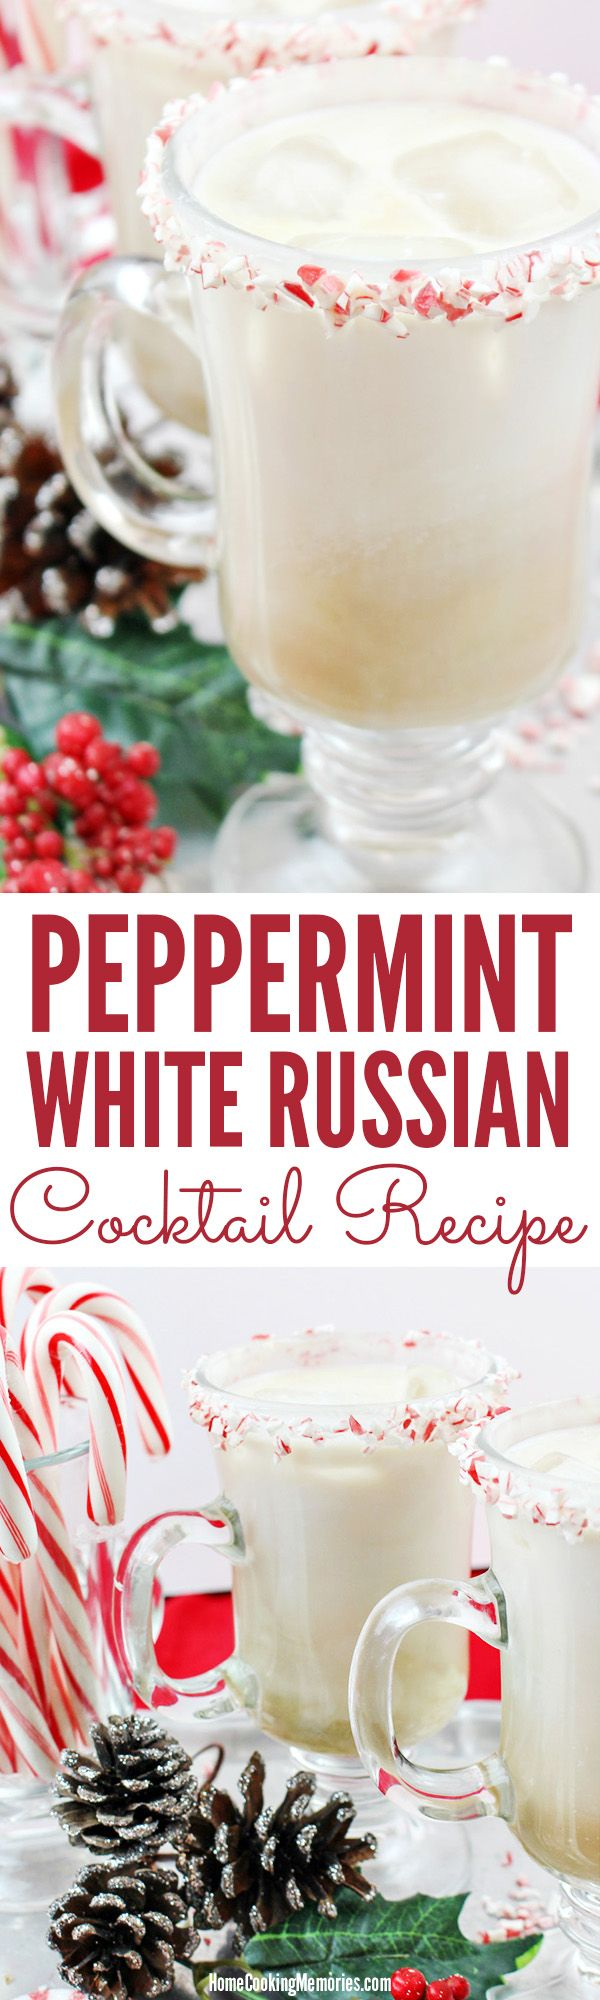 Festive Christmas cocktail recipe for adults! This Peppermint White Russian recipe uses peppermint vodka, coffee liqueur, and cream. Serve in a peppermint candy-rimmed glass. Great drink whether it's a cozy night for two or to serve guests at your holiday party.